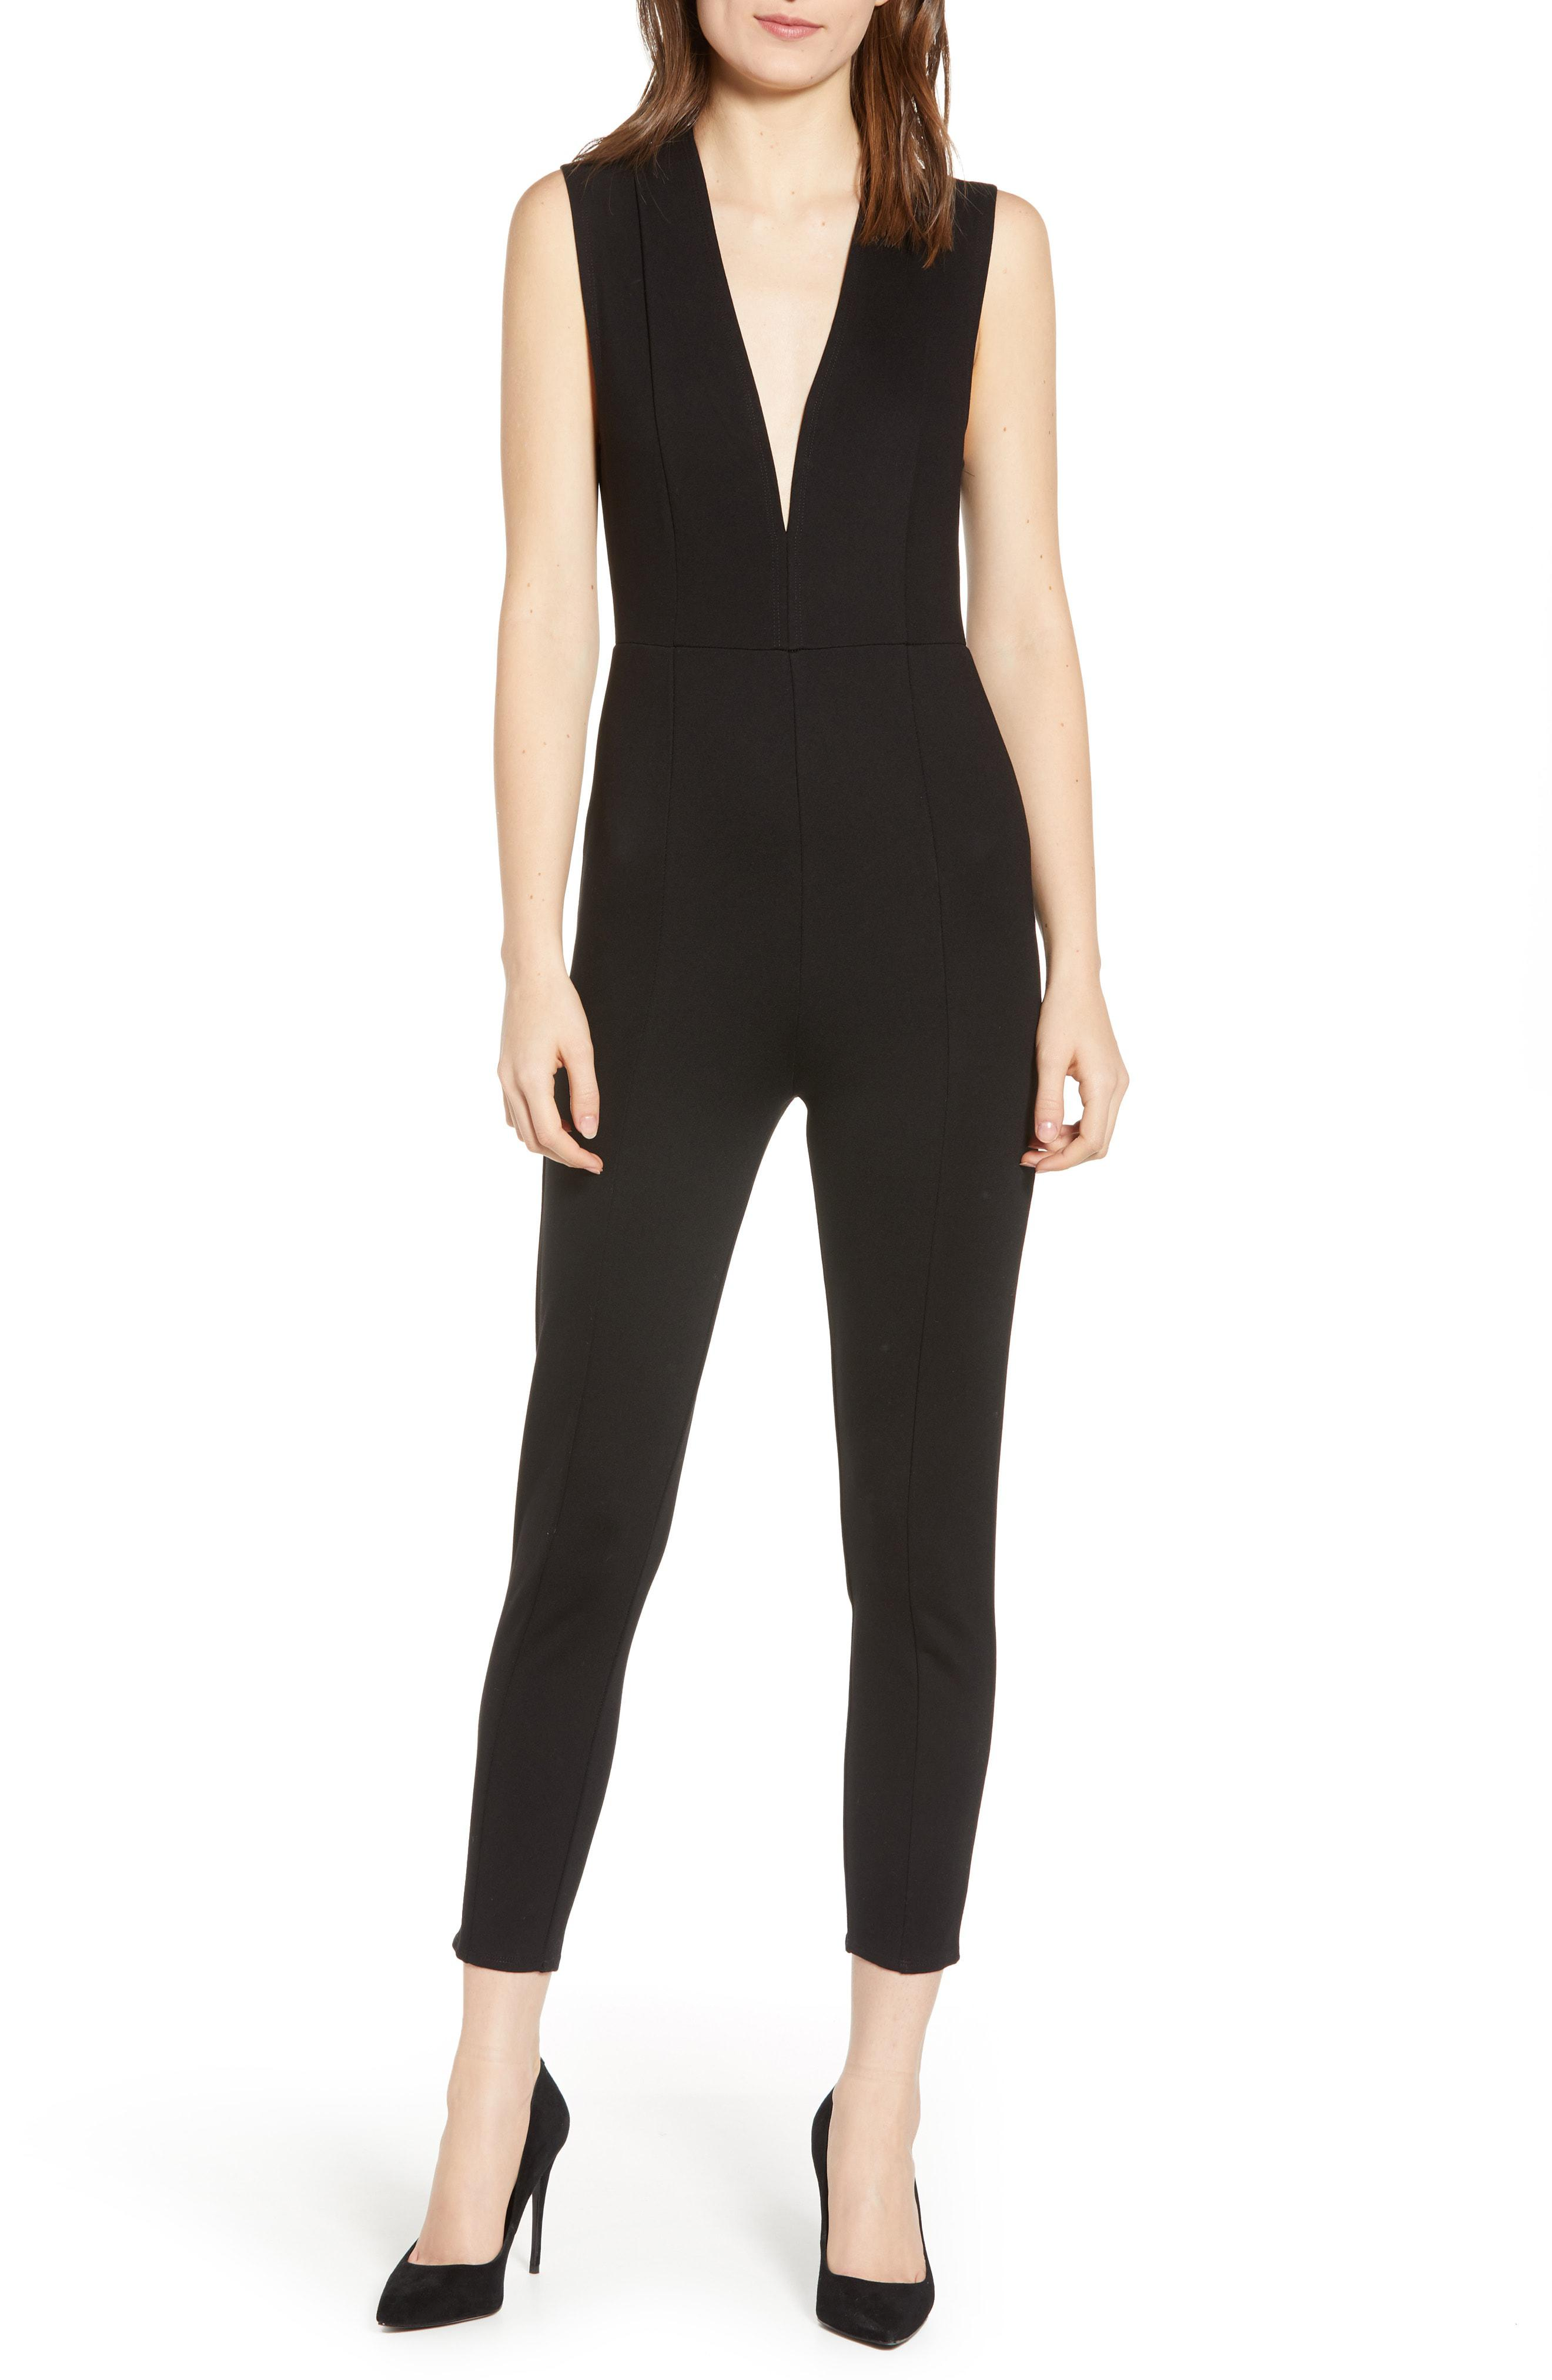 42baf36f7f4 Lyst - Amuse Society Cat s Meow Jumpsuit in Black